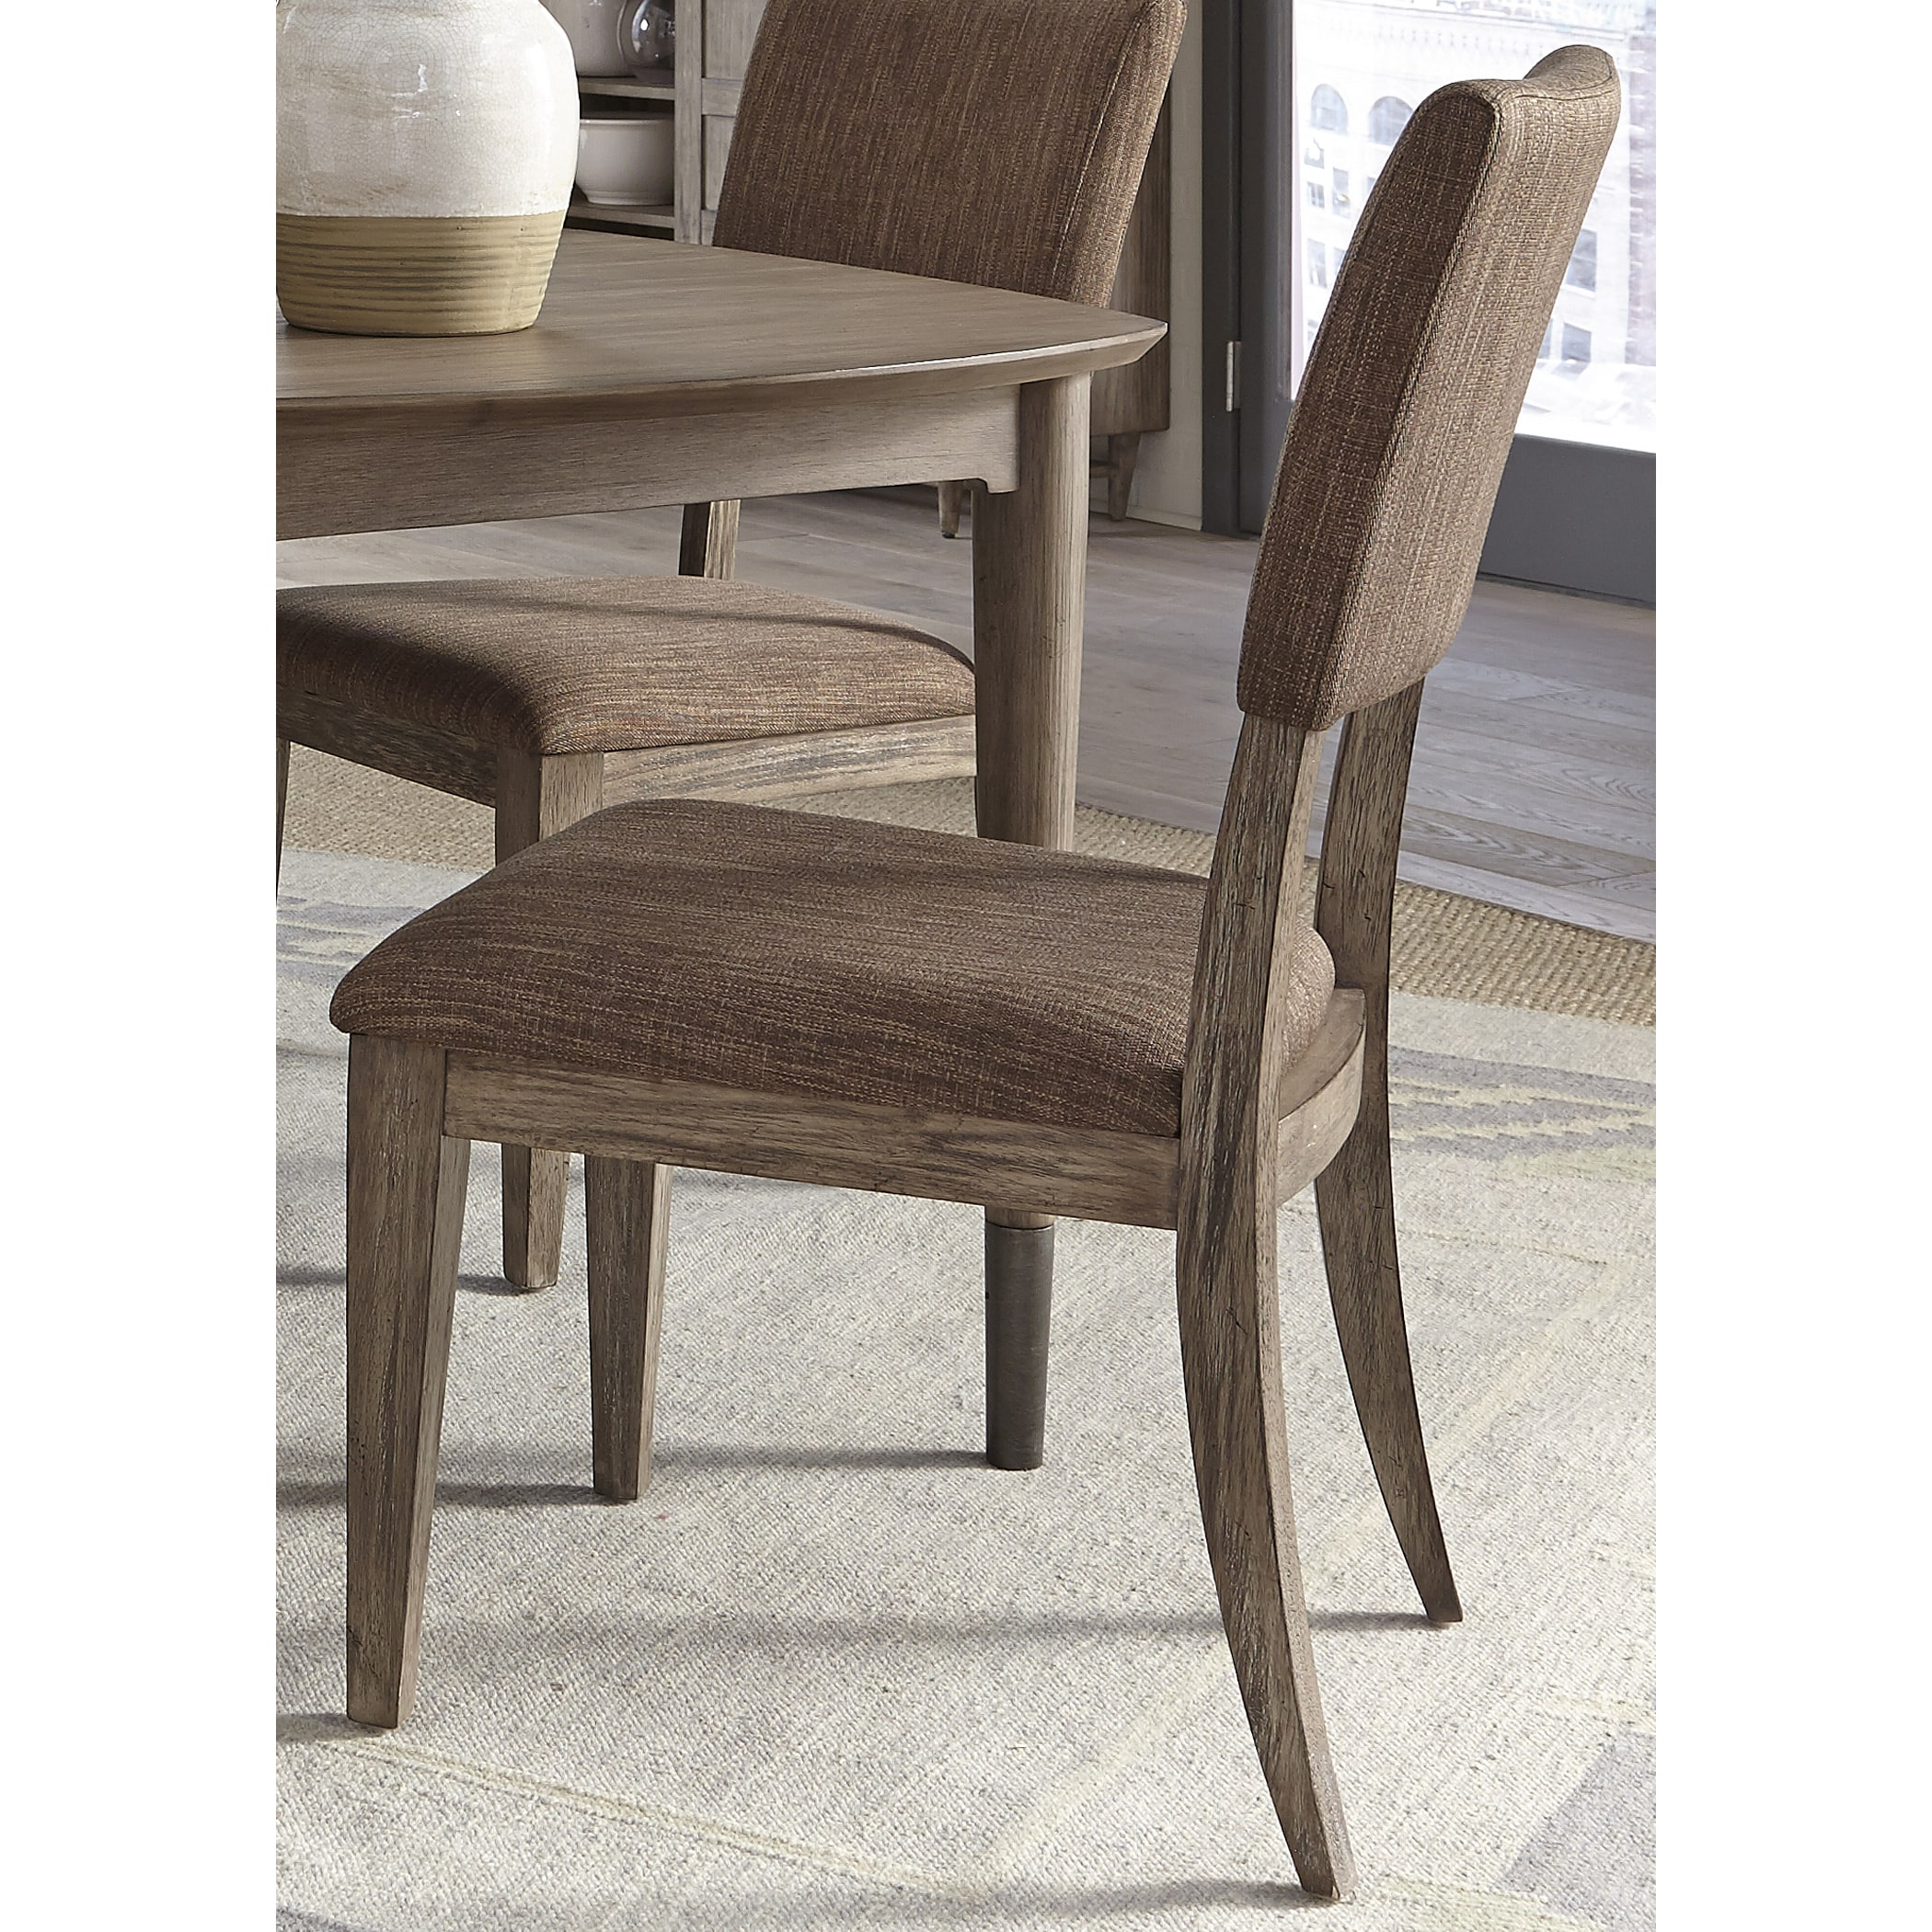 Shop liberty miramar mid century modern pine upholstered side chair free shipping today overstock com 15616116